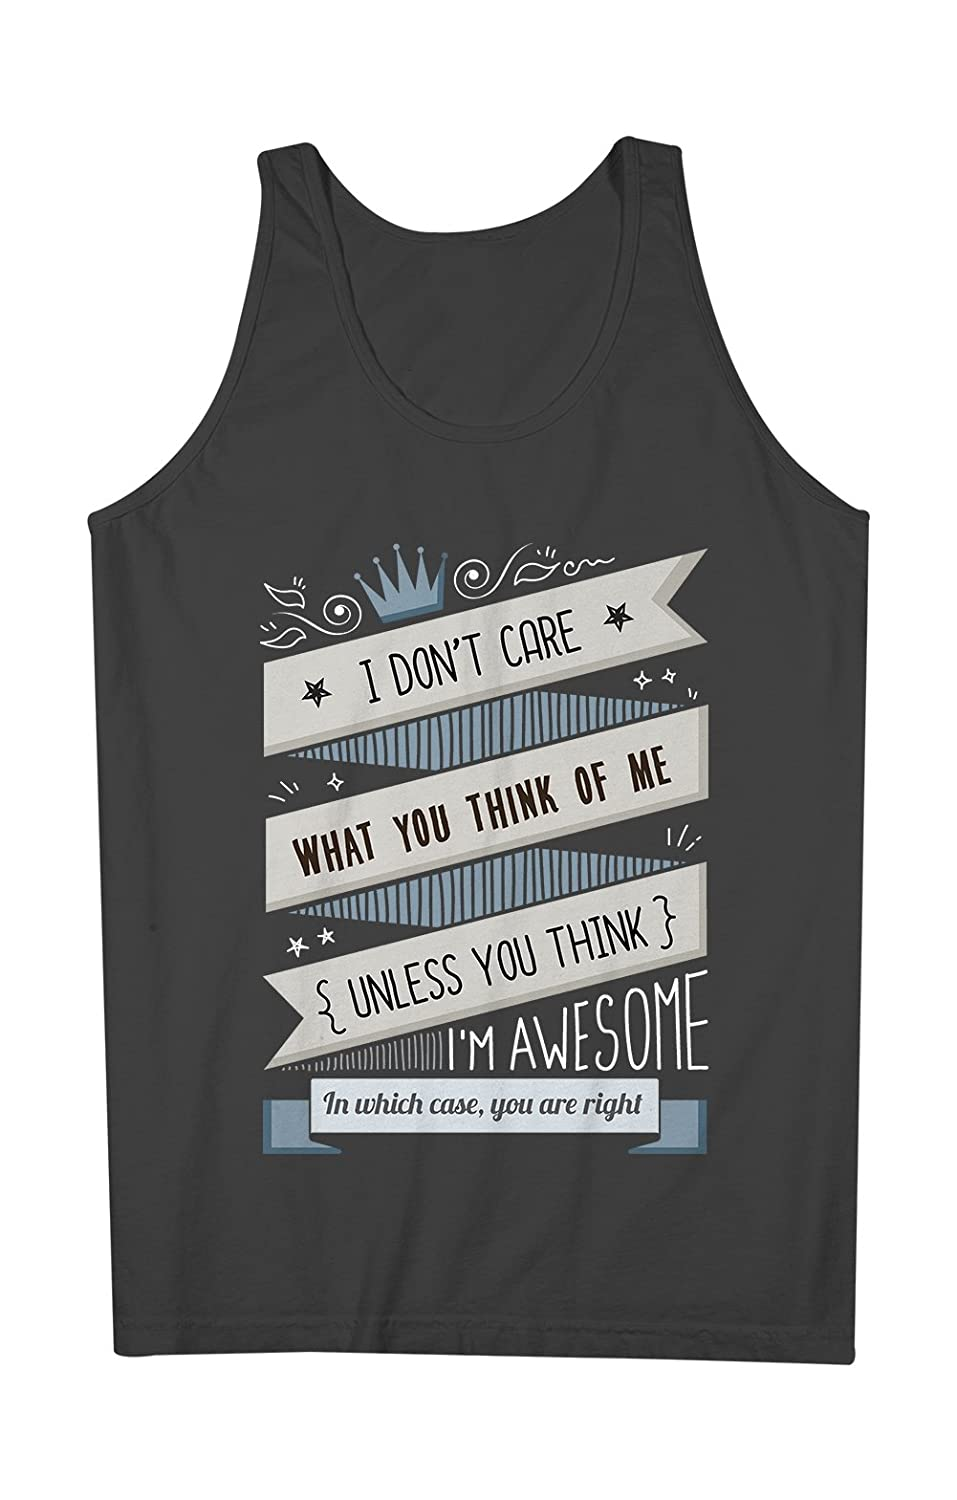 I Don't Care What You Think Of Me 皮肉な おかしいです 男性用 Tank Top Sleeveless Shirt